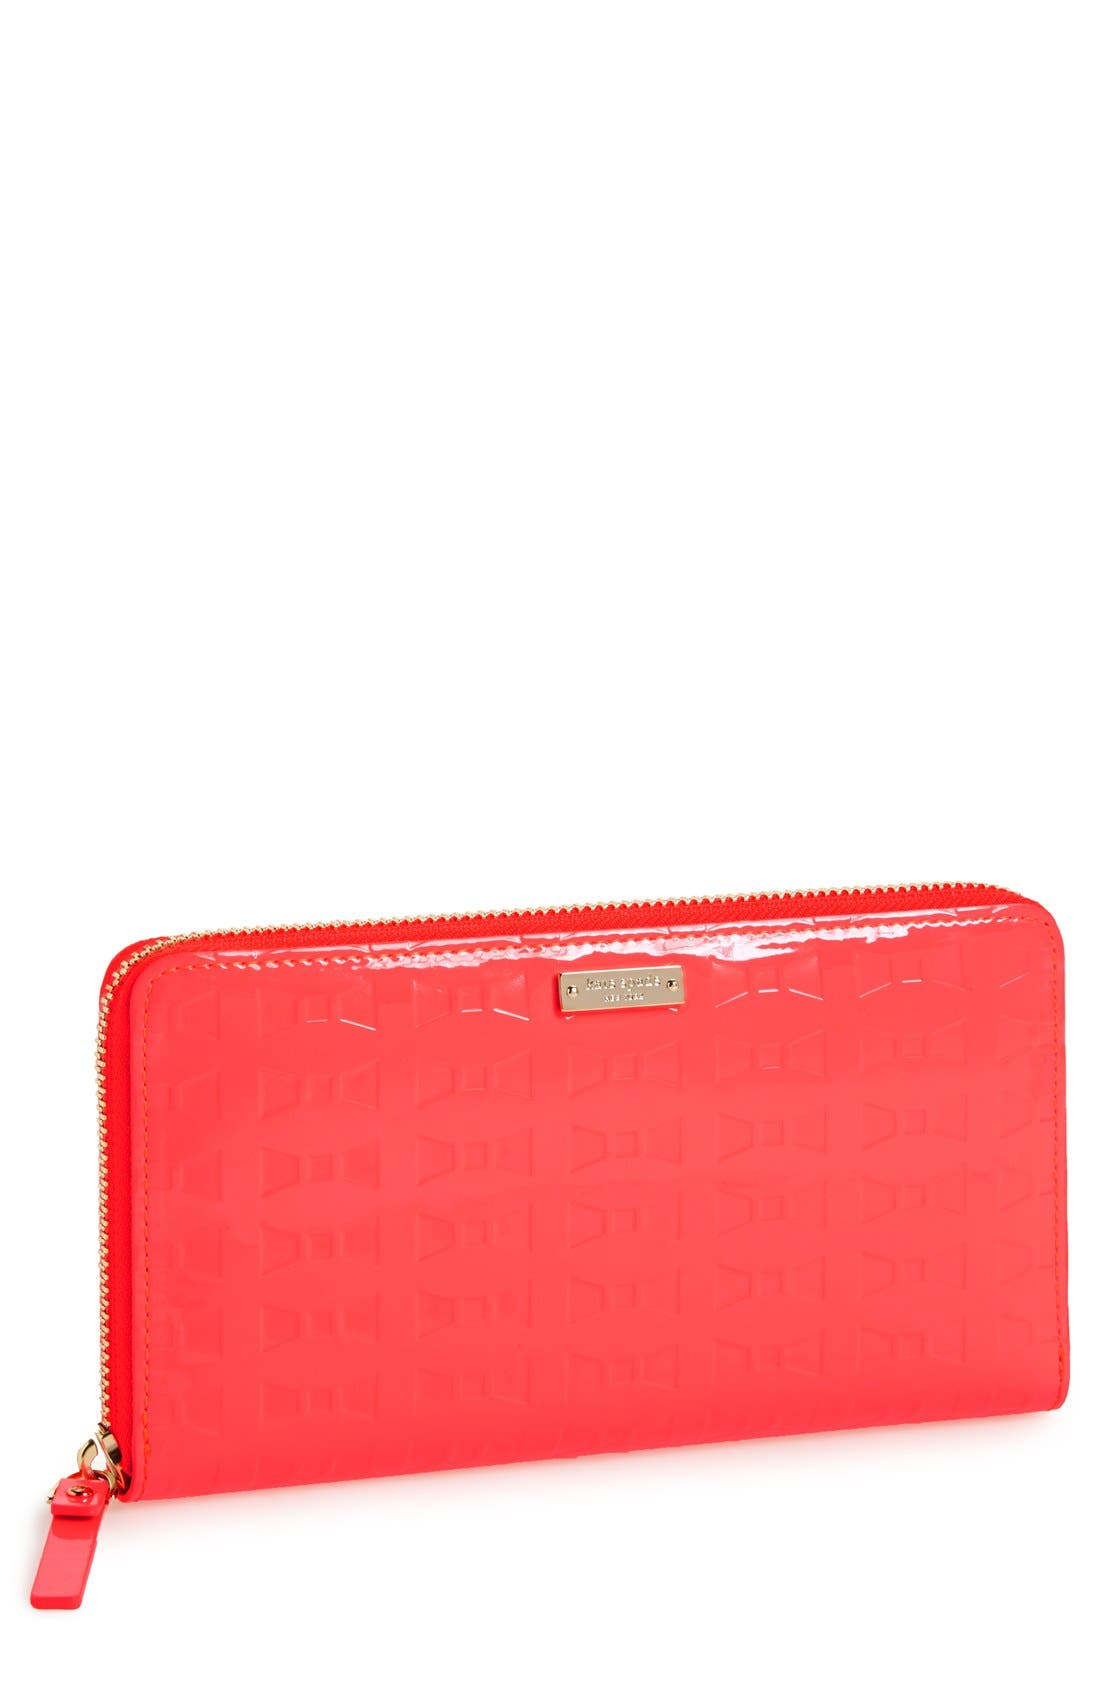 Main Image - kate spade new york 'fancy that - lacey' wallet